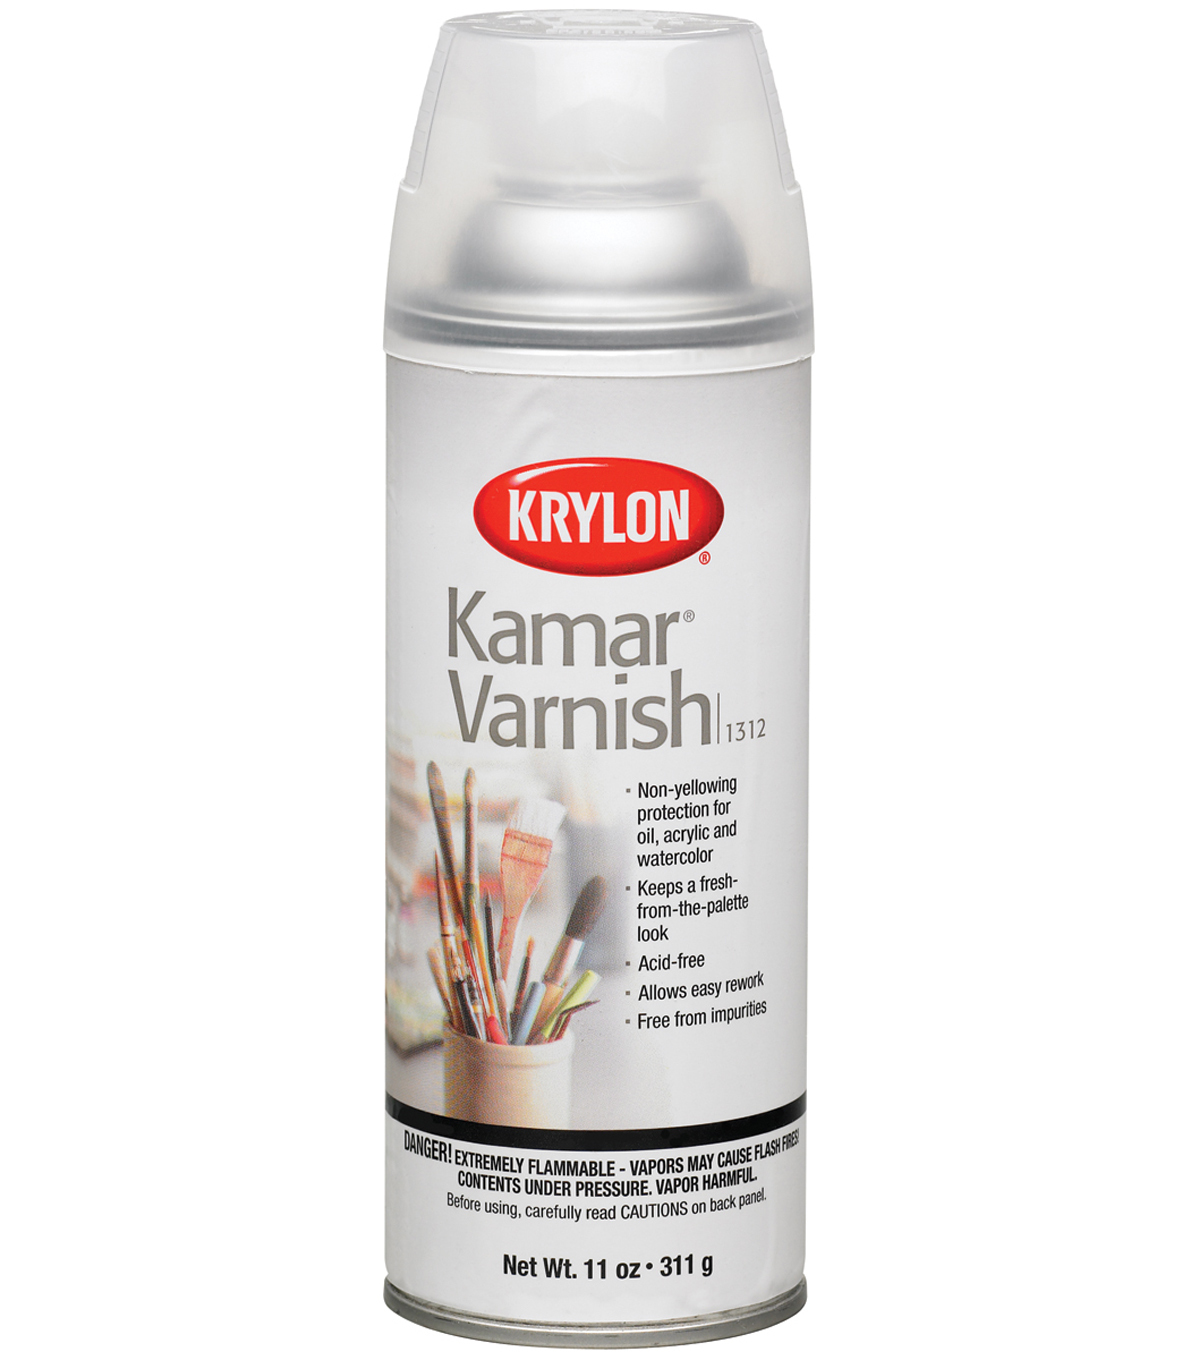 Krylon Kamar Varnish Aerosol Spray 11oz